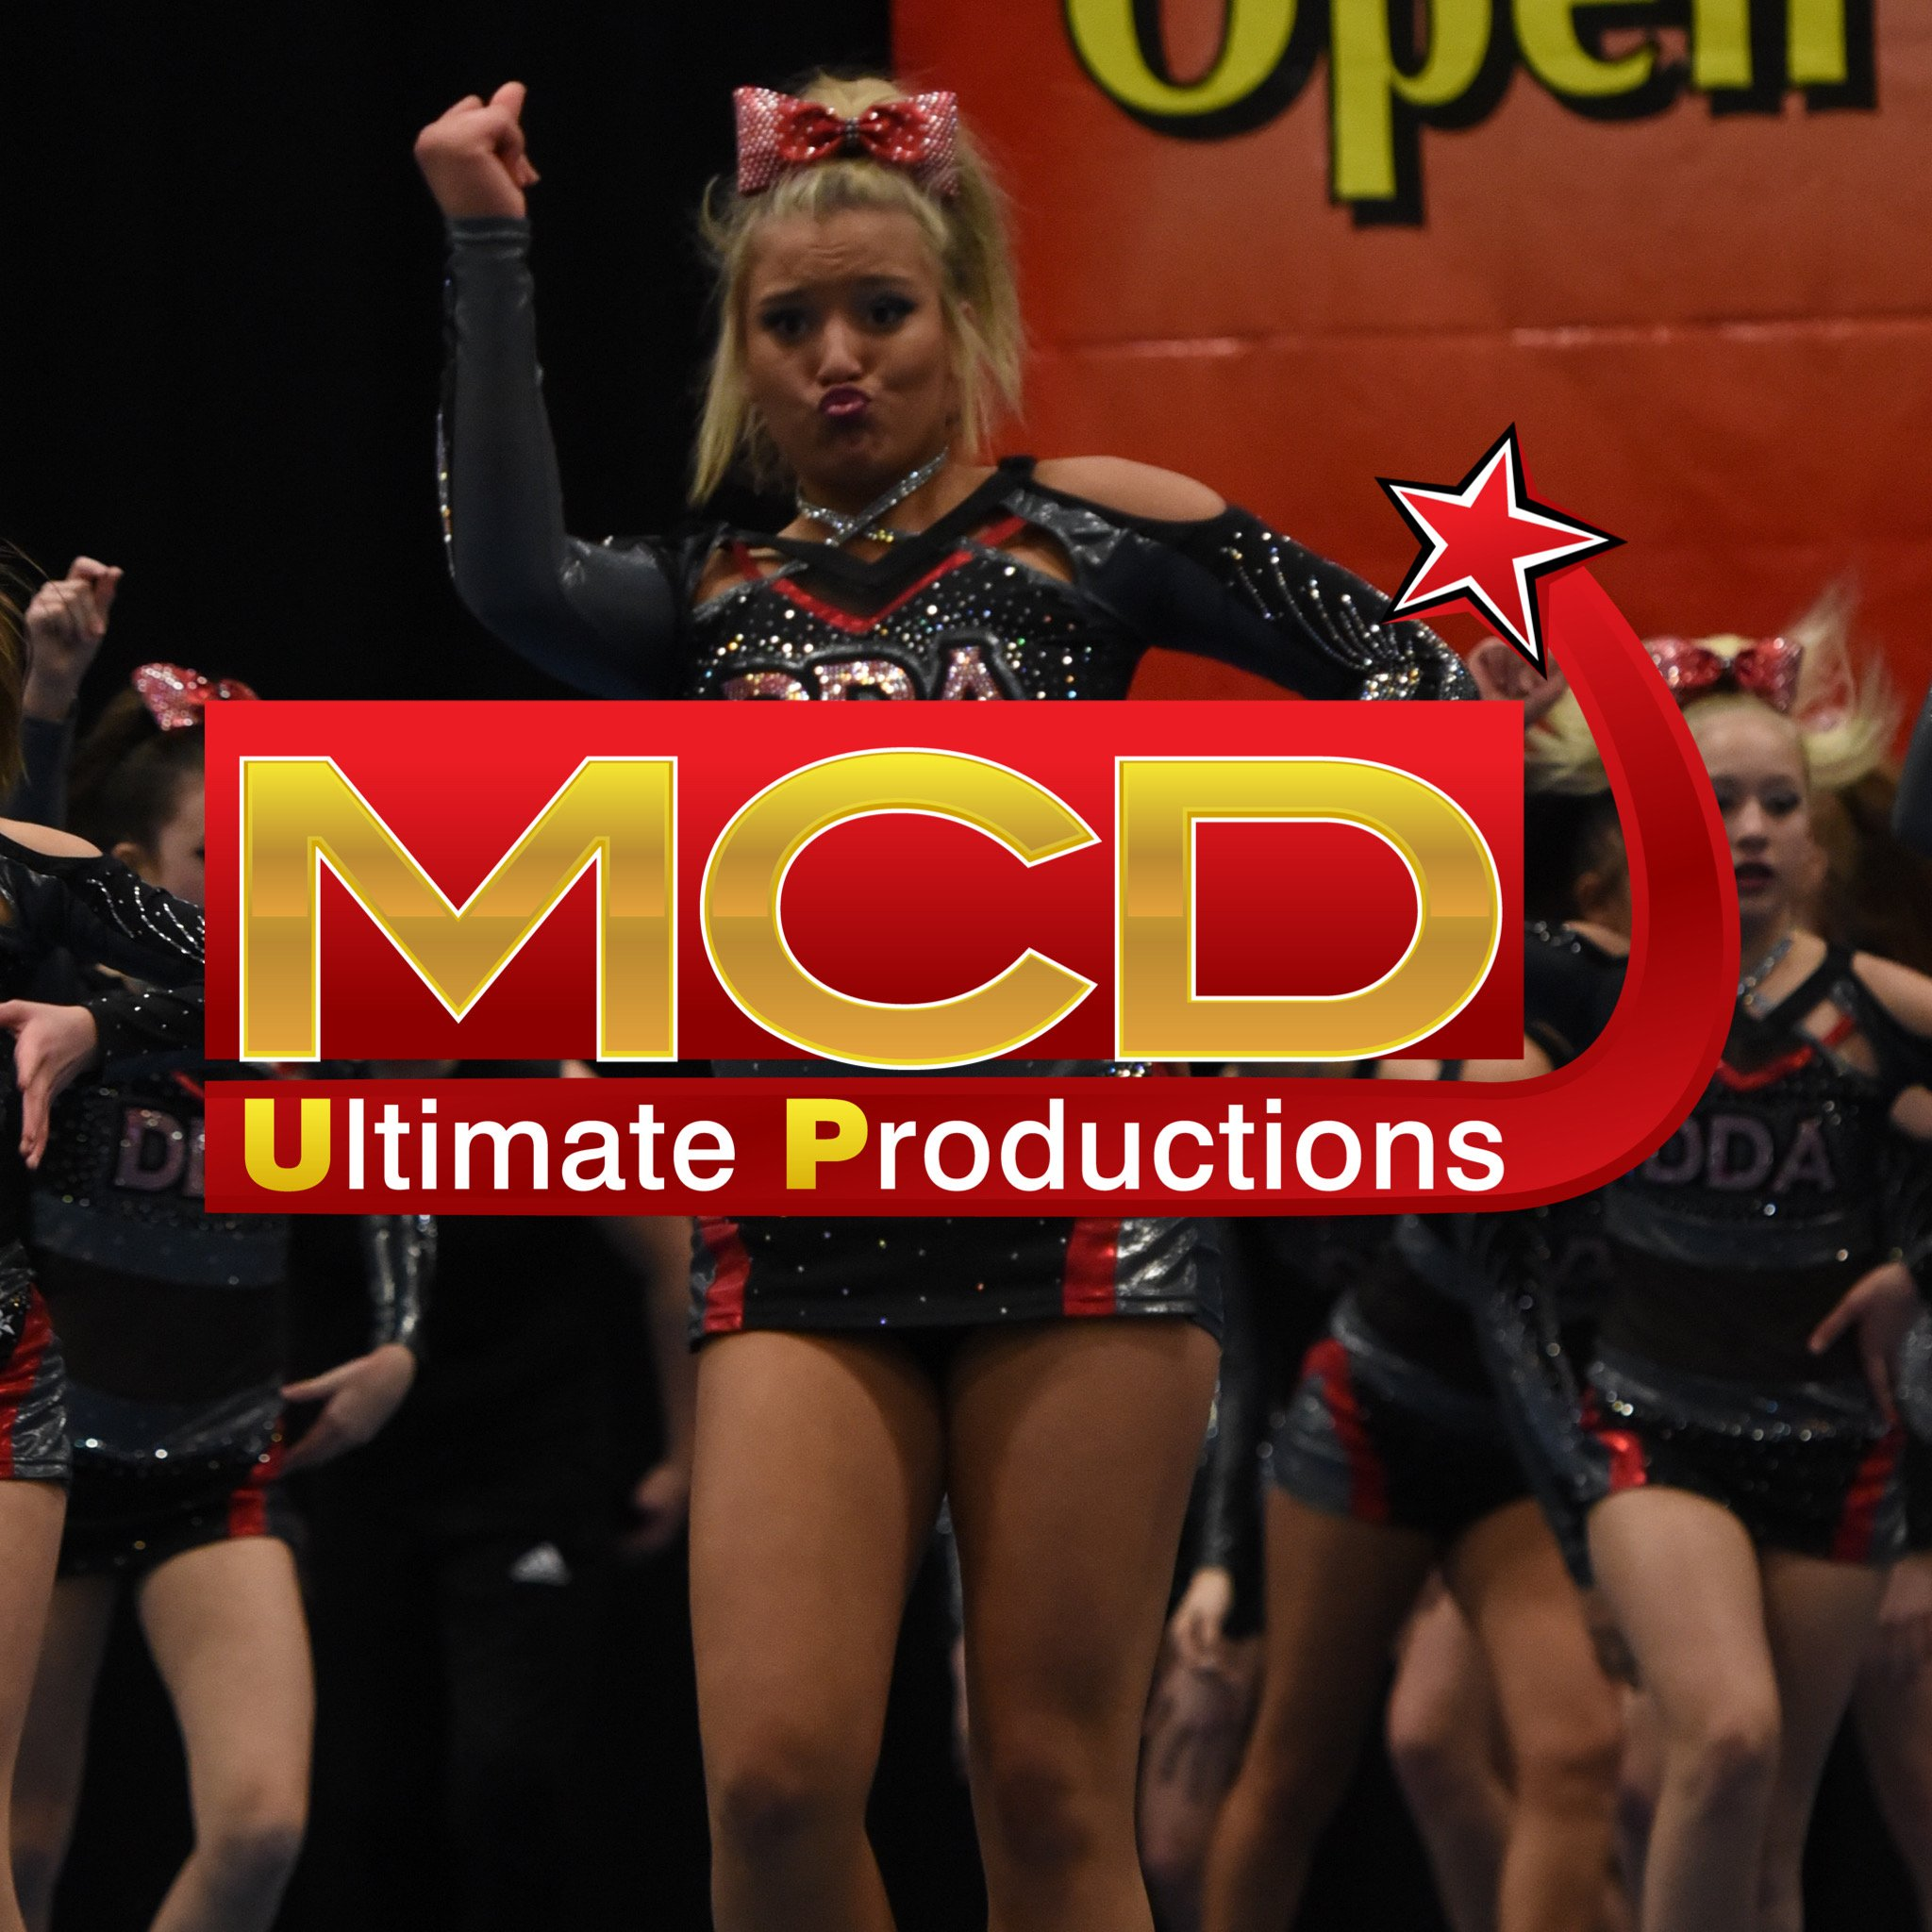 MCD Ultimate Productions